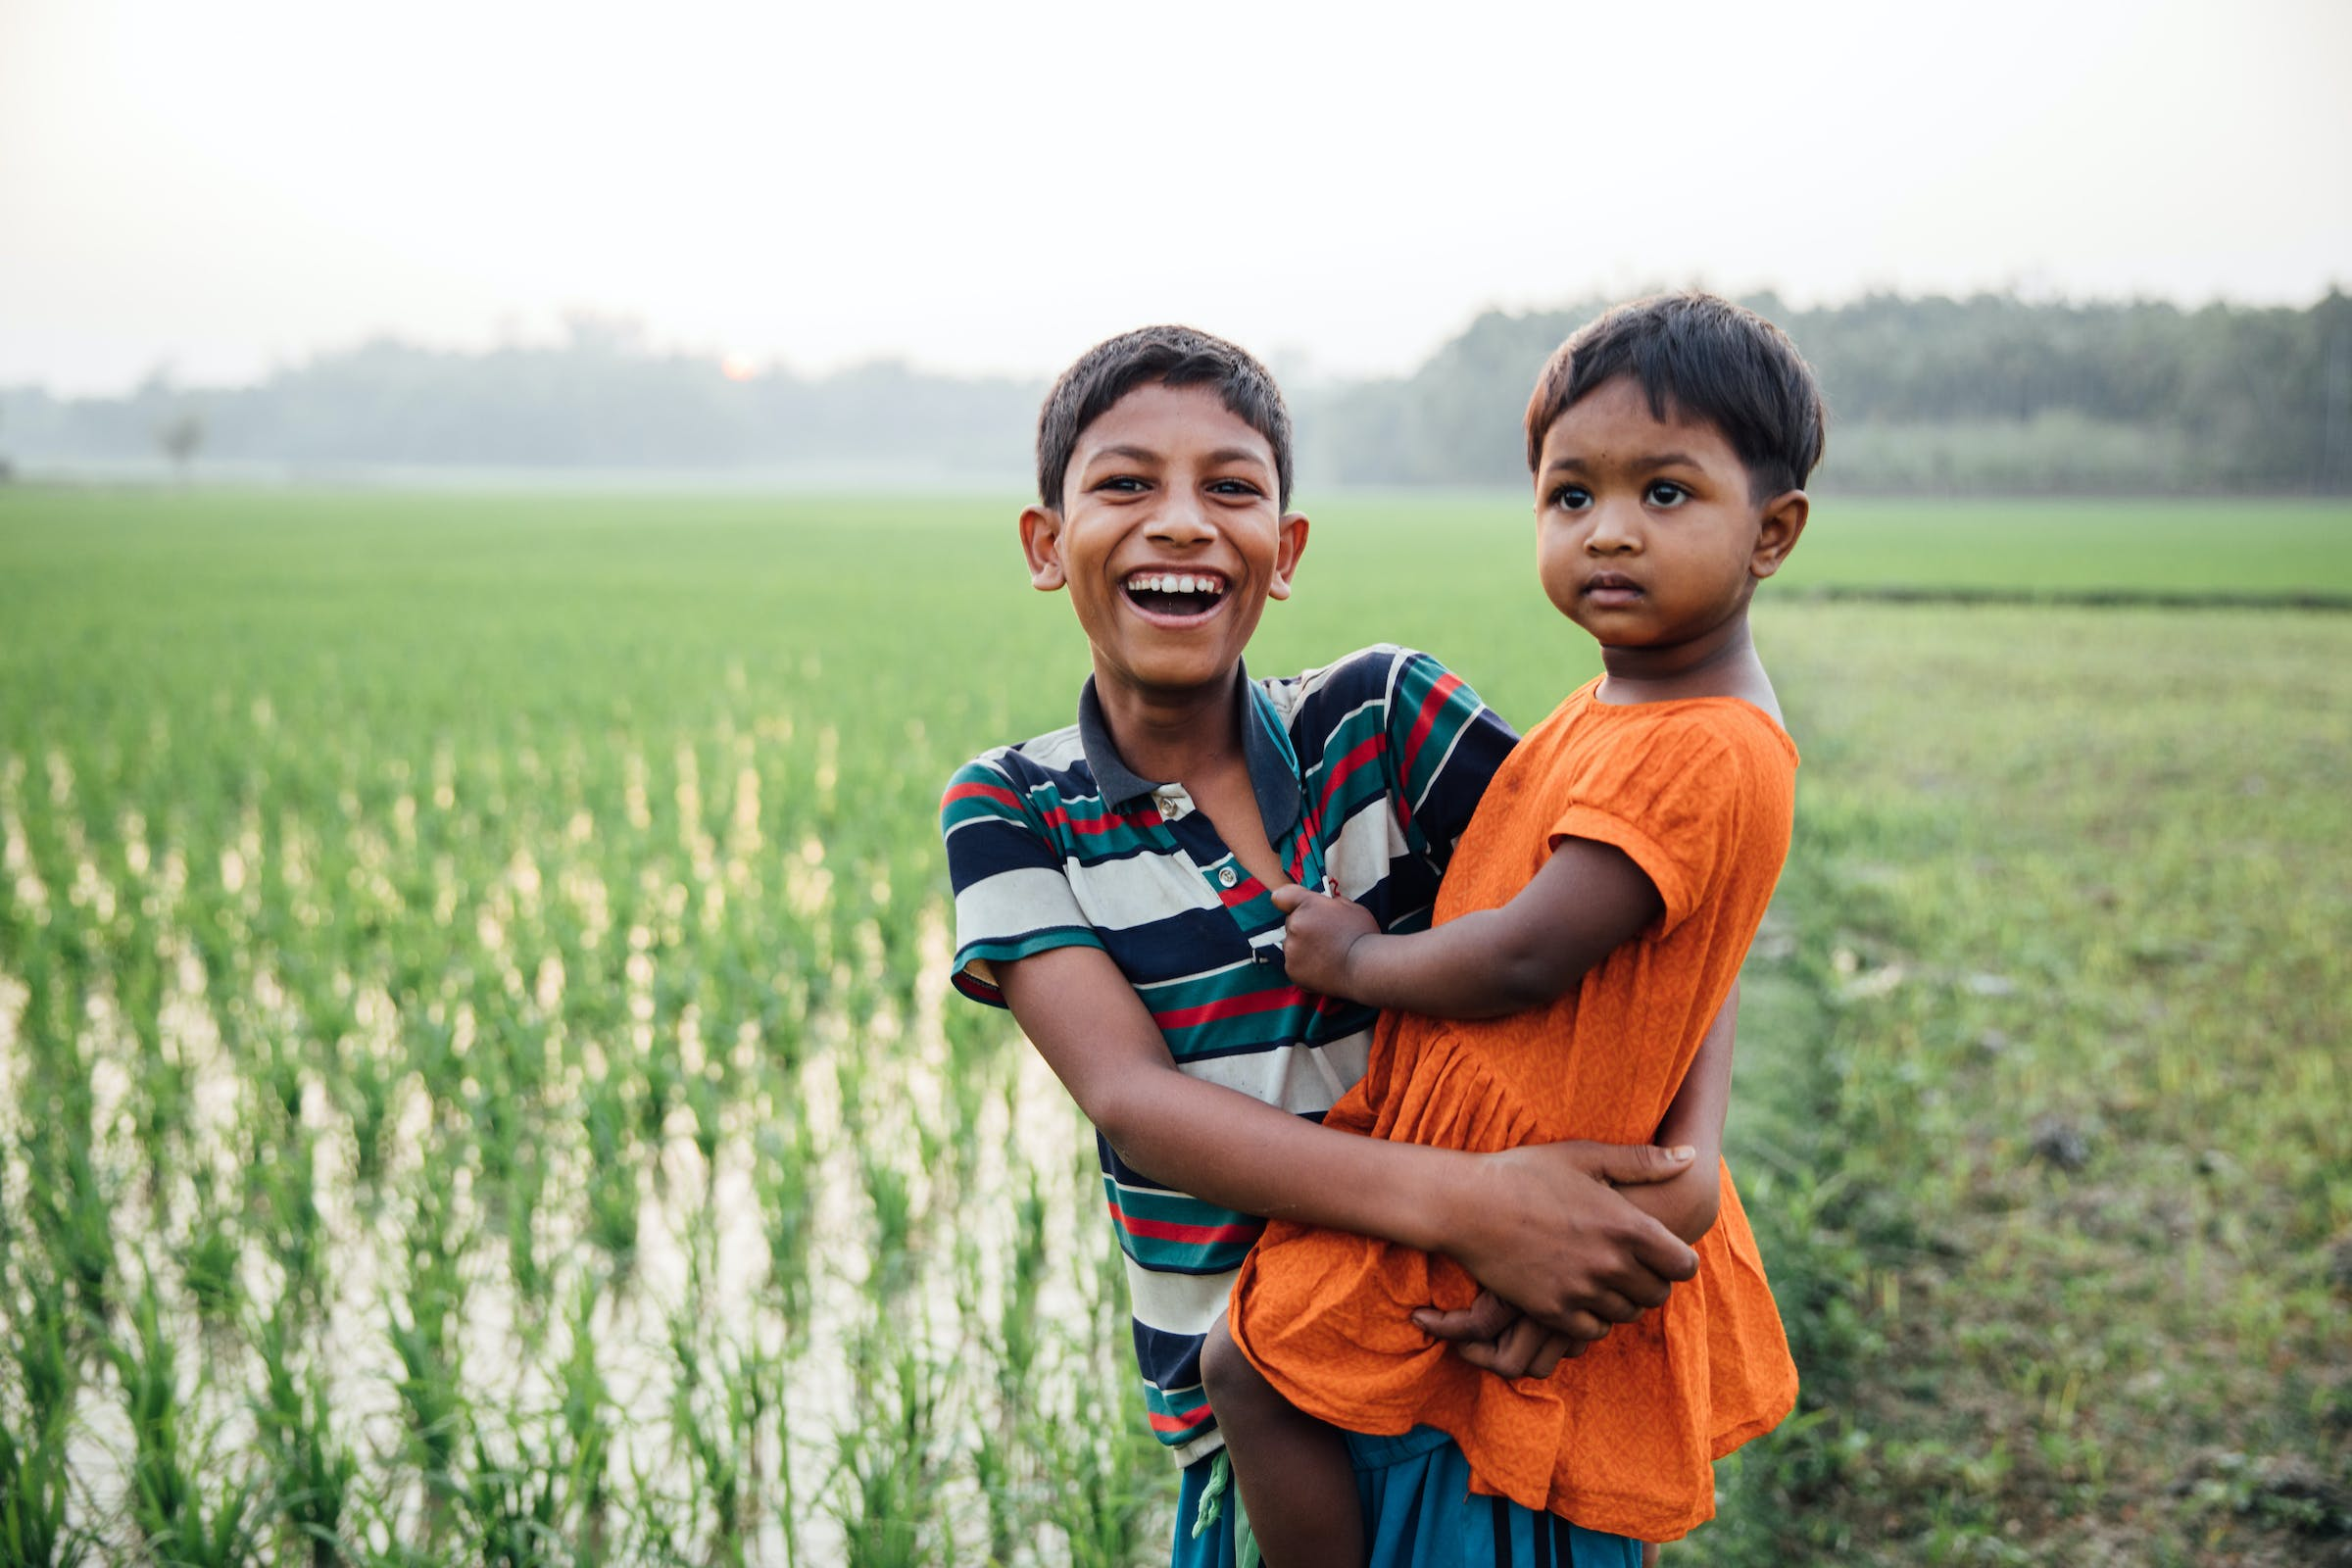 A young Rohingya boy carries his sister in the backdrop of a green field